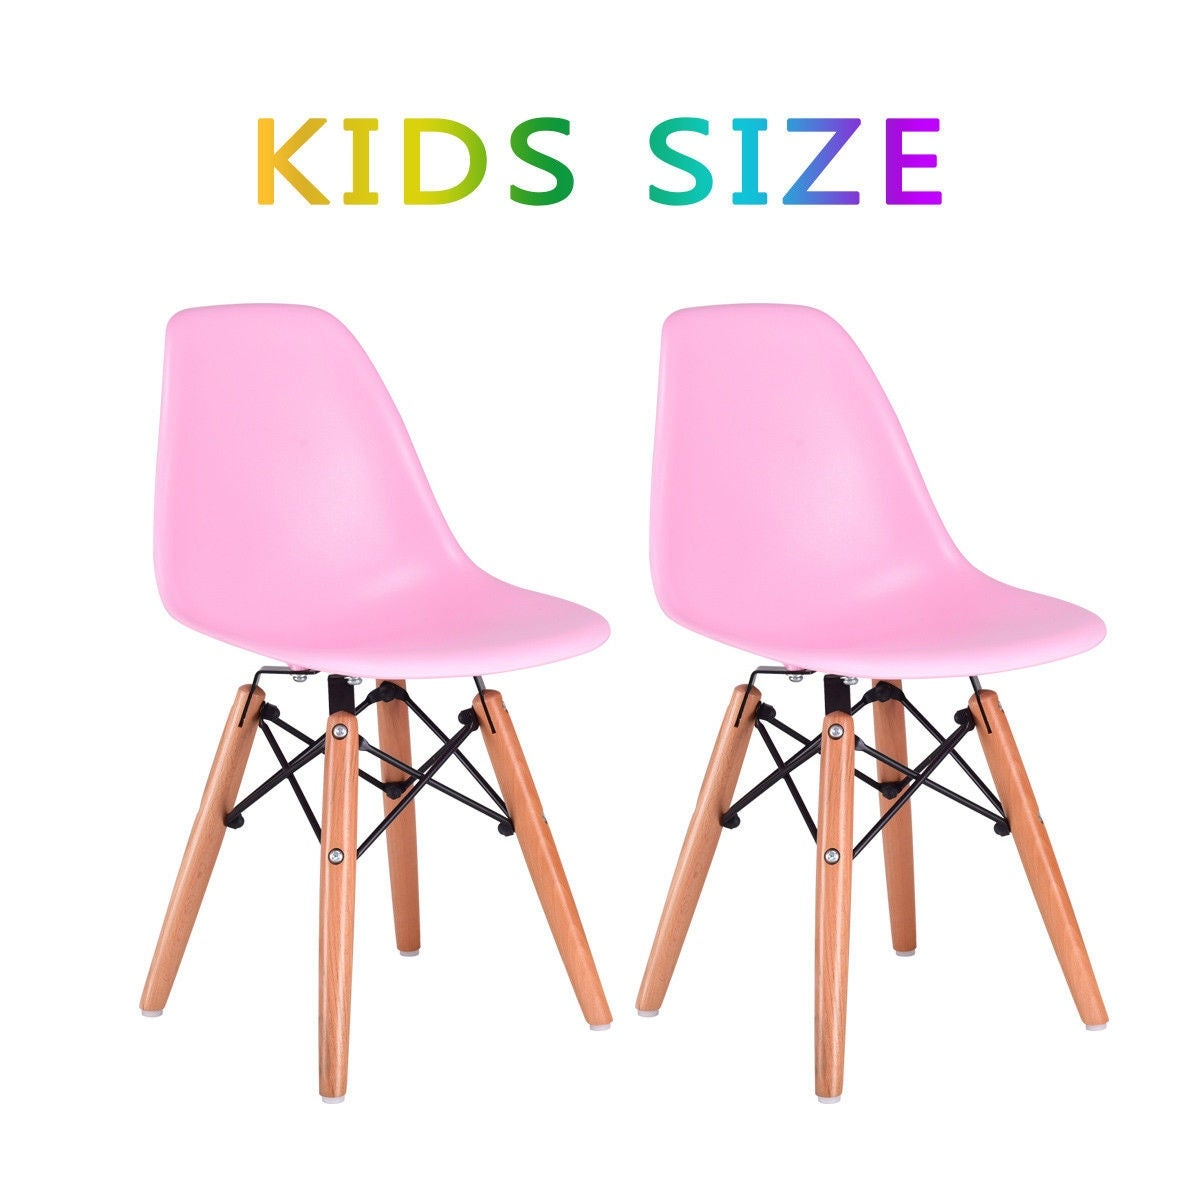 Kids Dining Chair Set Wood Dowel Legs Molded Abs Plastic Seat Armless Pink Free Shipping Today 18770723